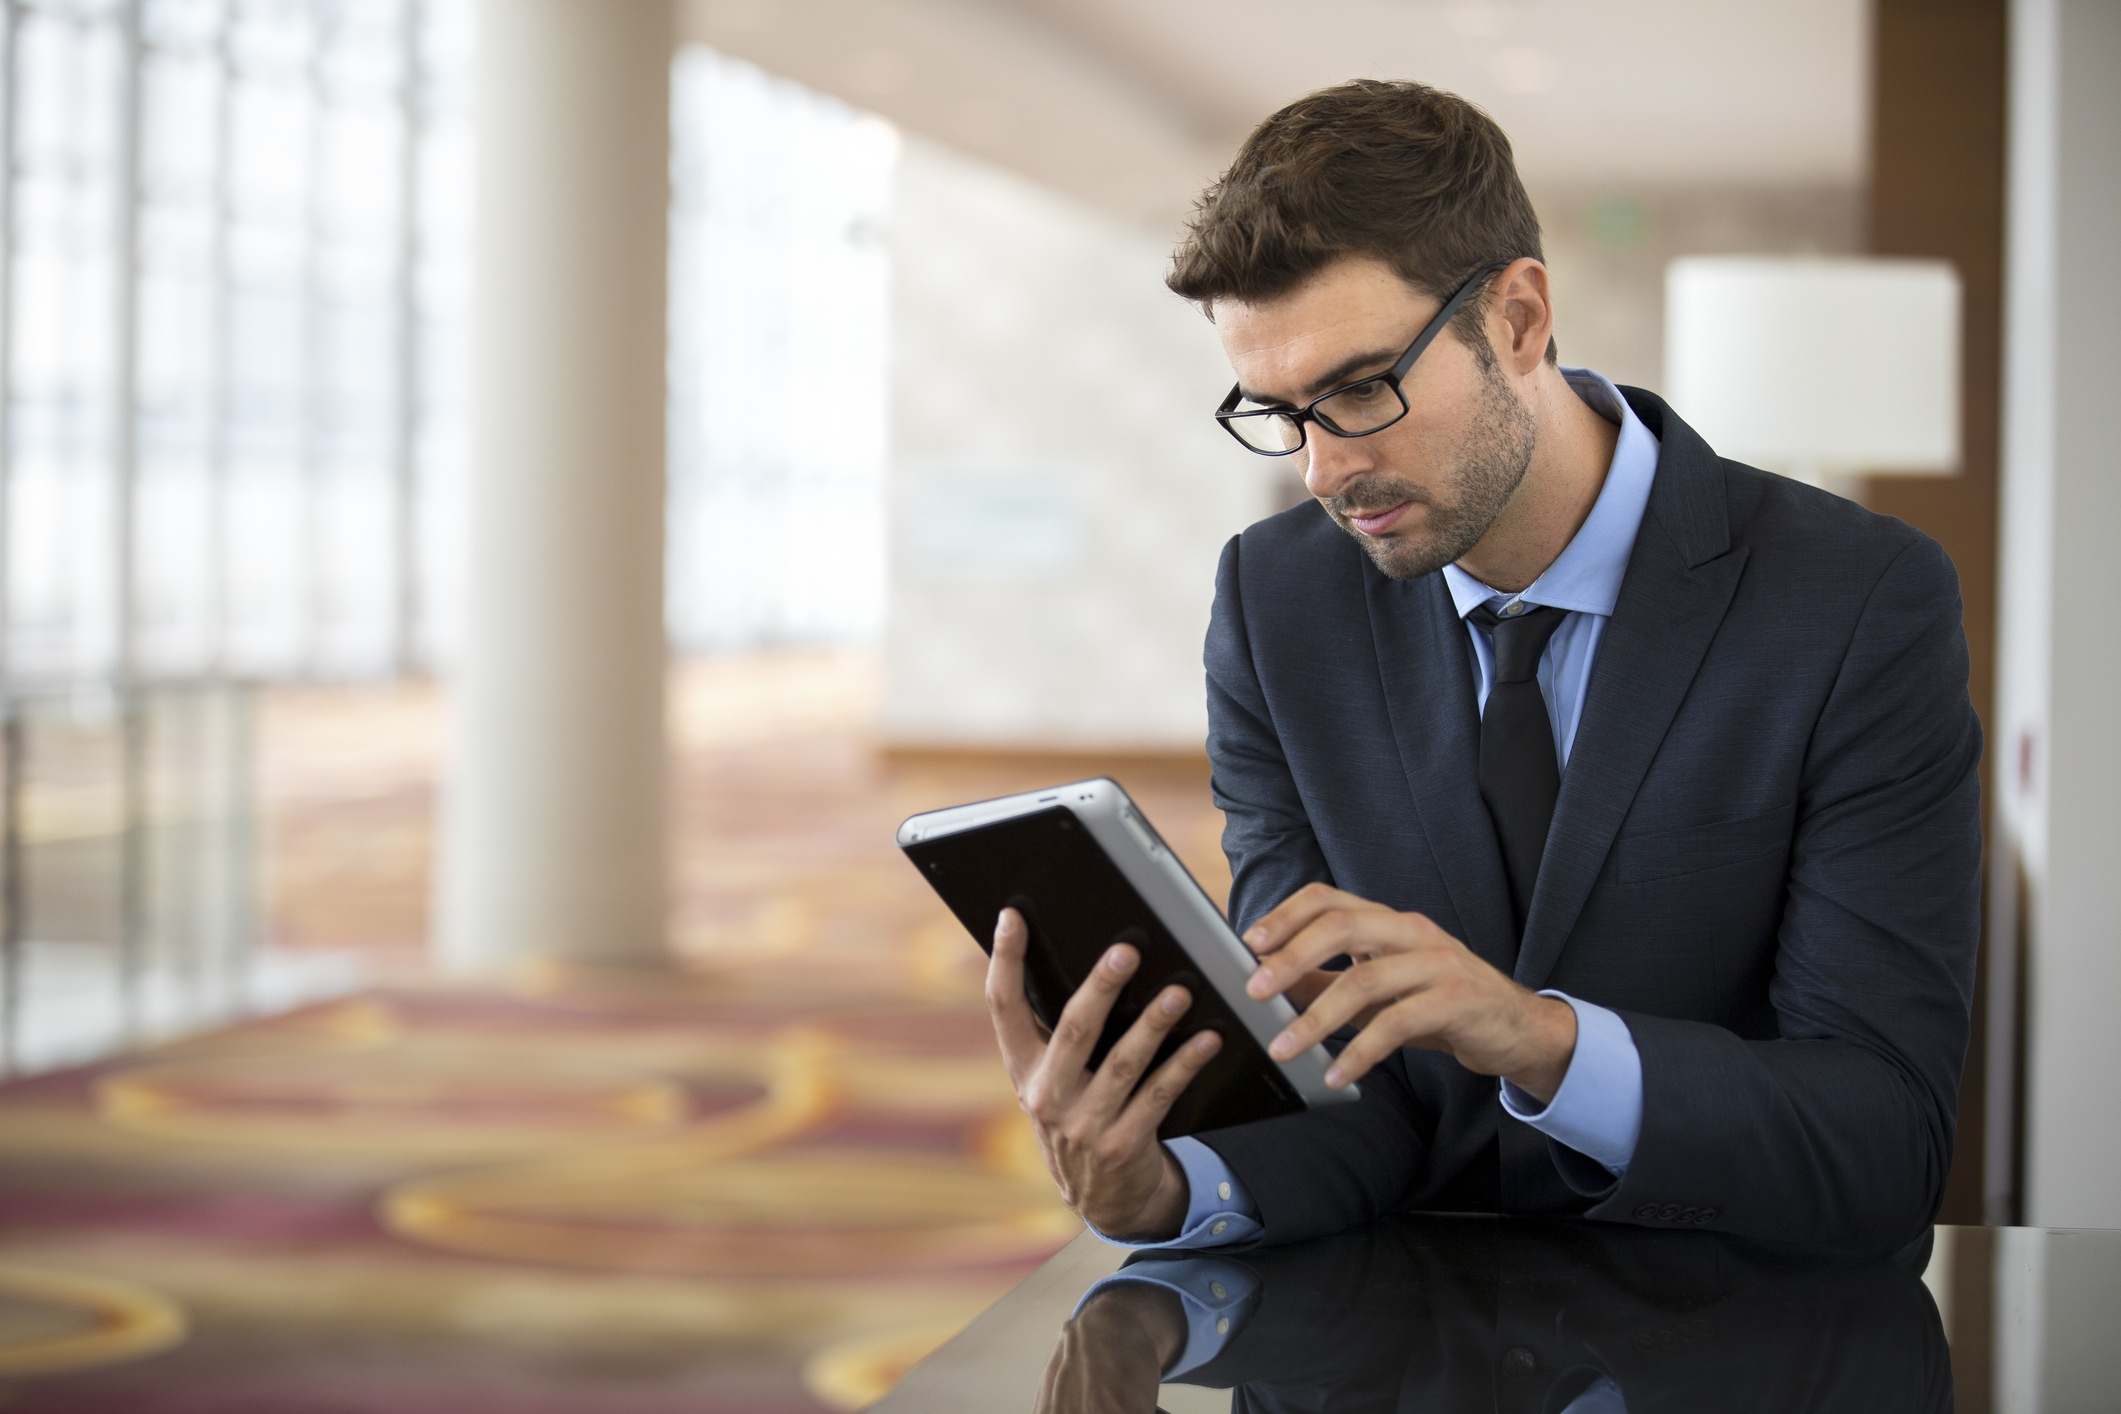 Focused Businessman Using a Tablet